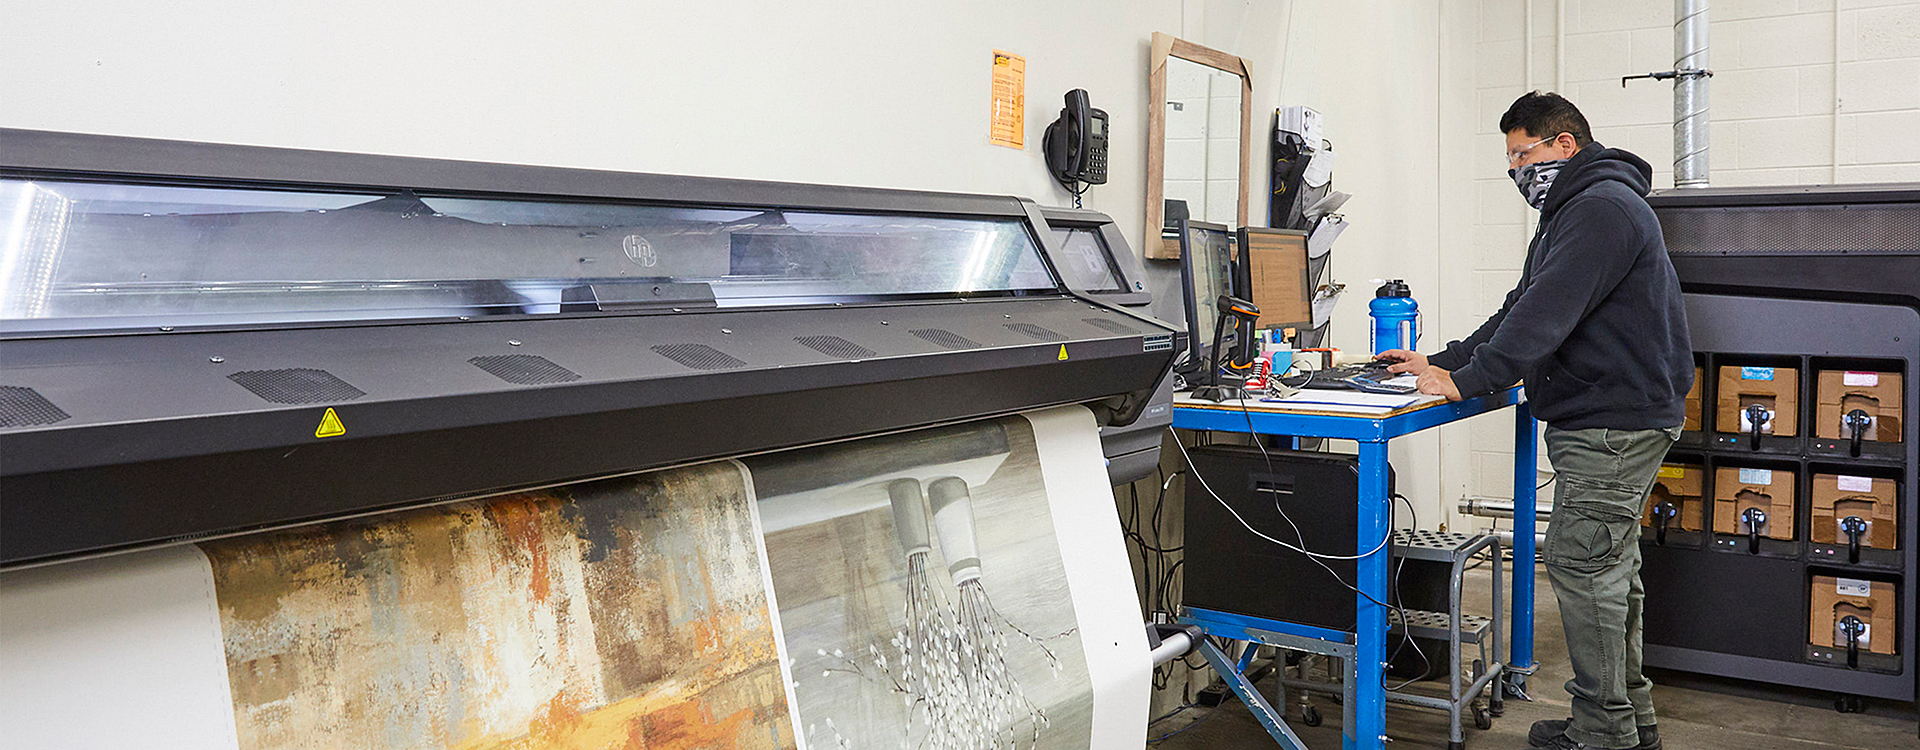 Person working on printing machine